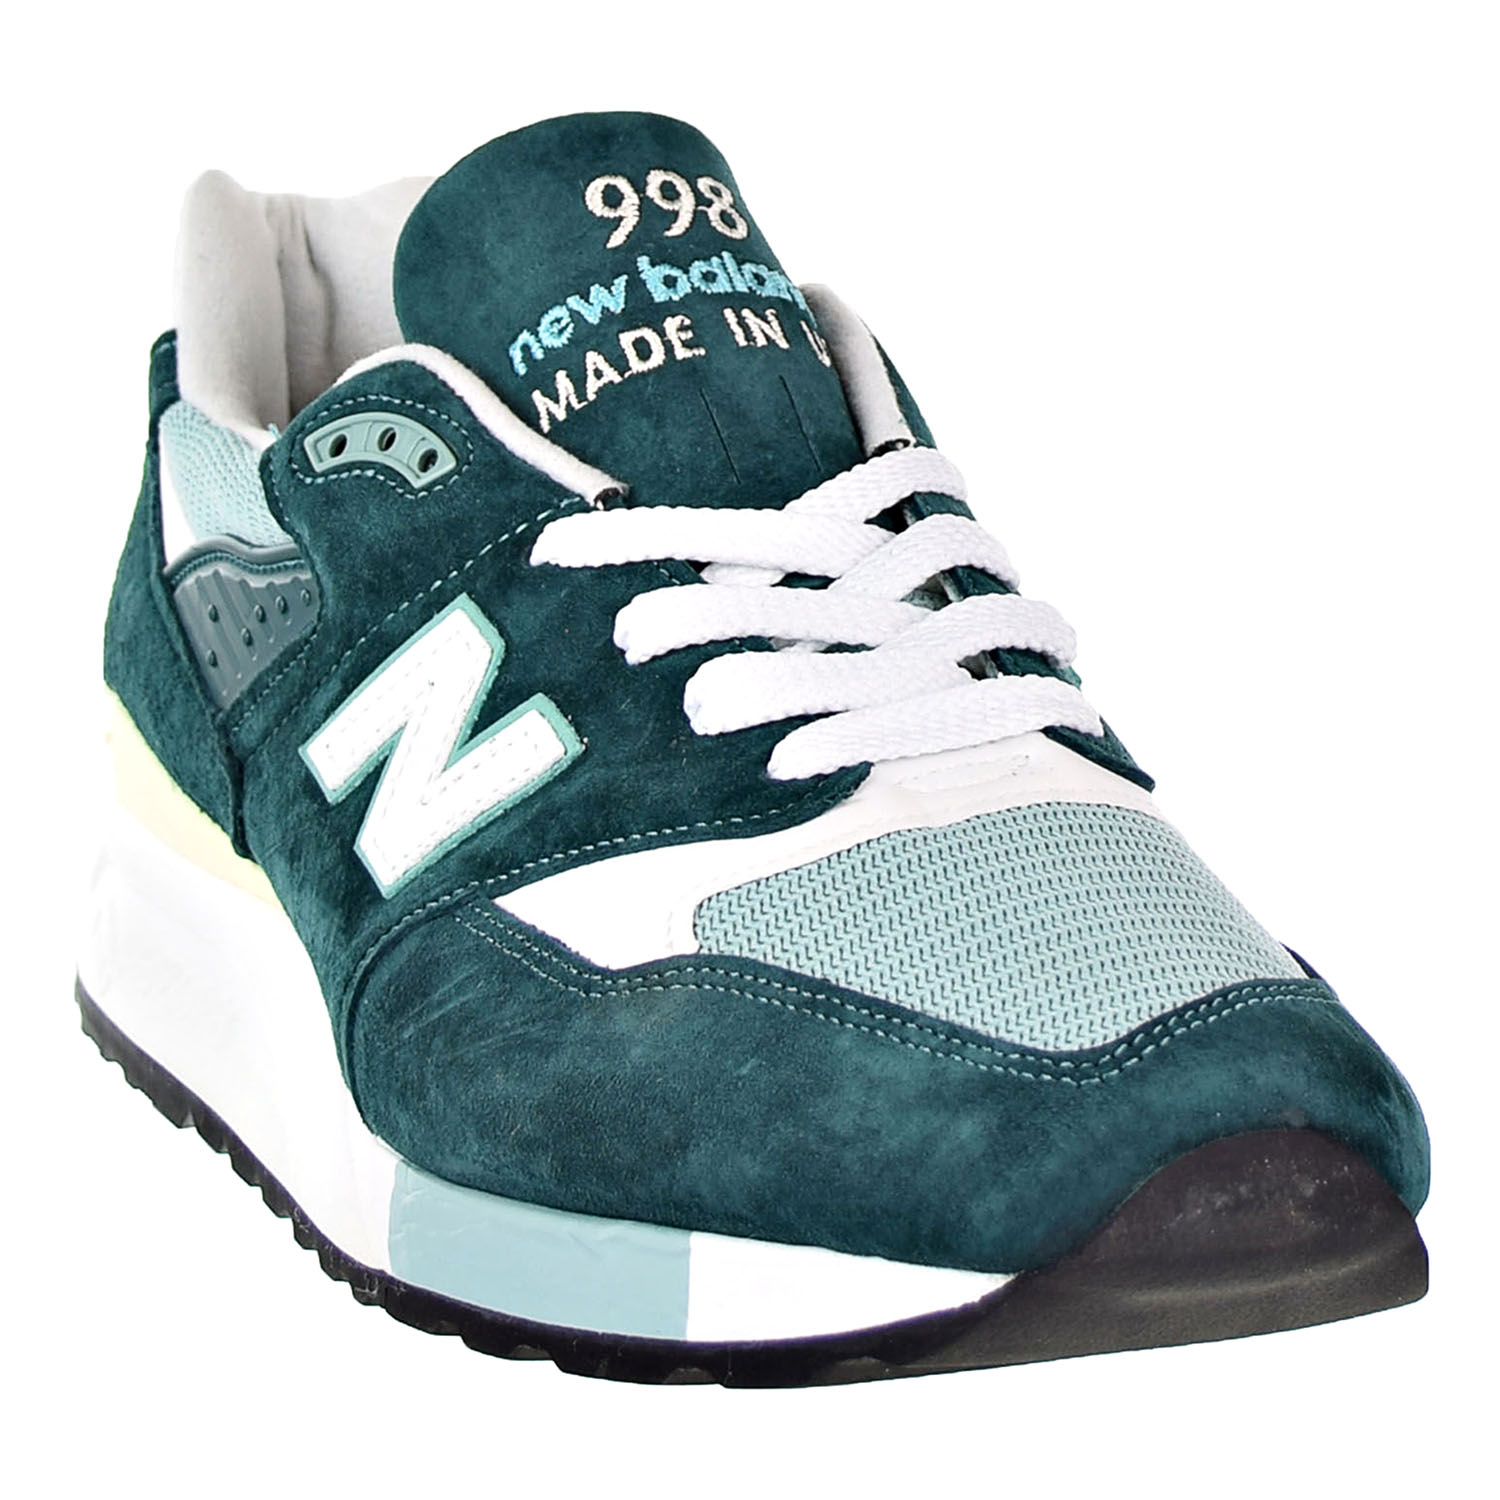 8703106ff New Balance 998 Classic Men s Shoes Dark Green White Made In USA m998-csam